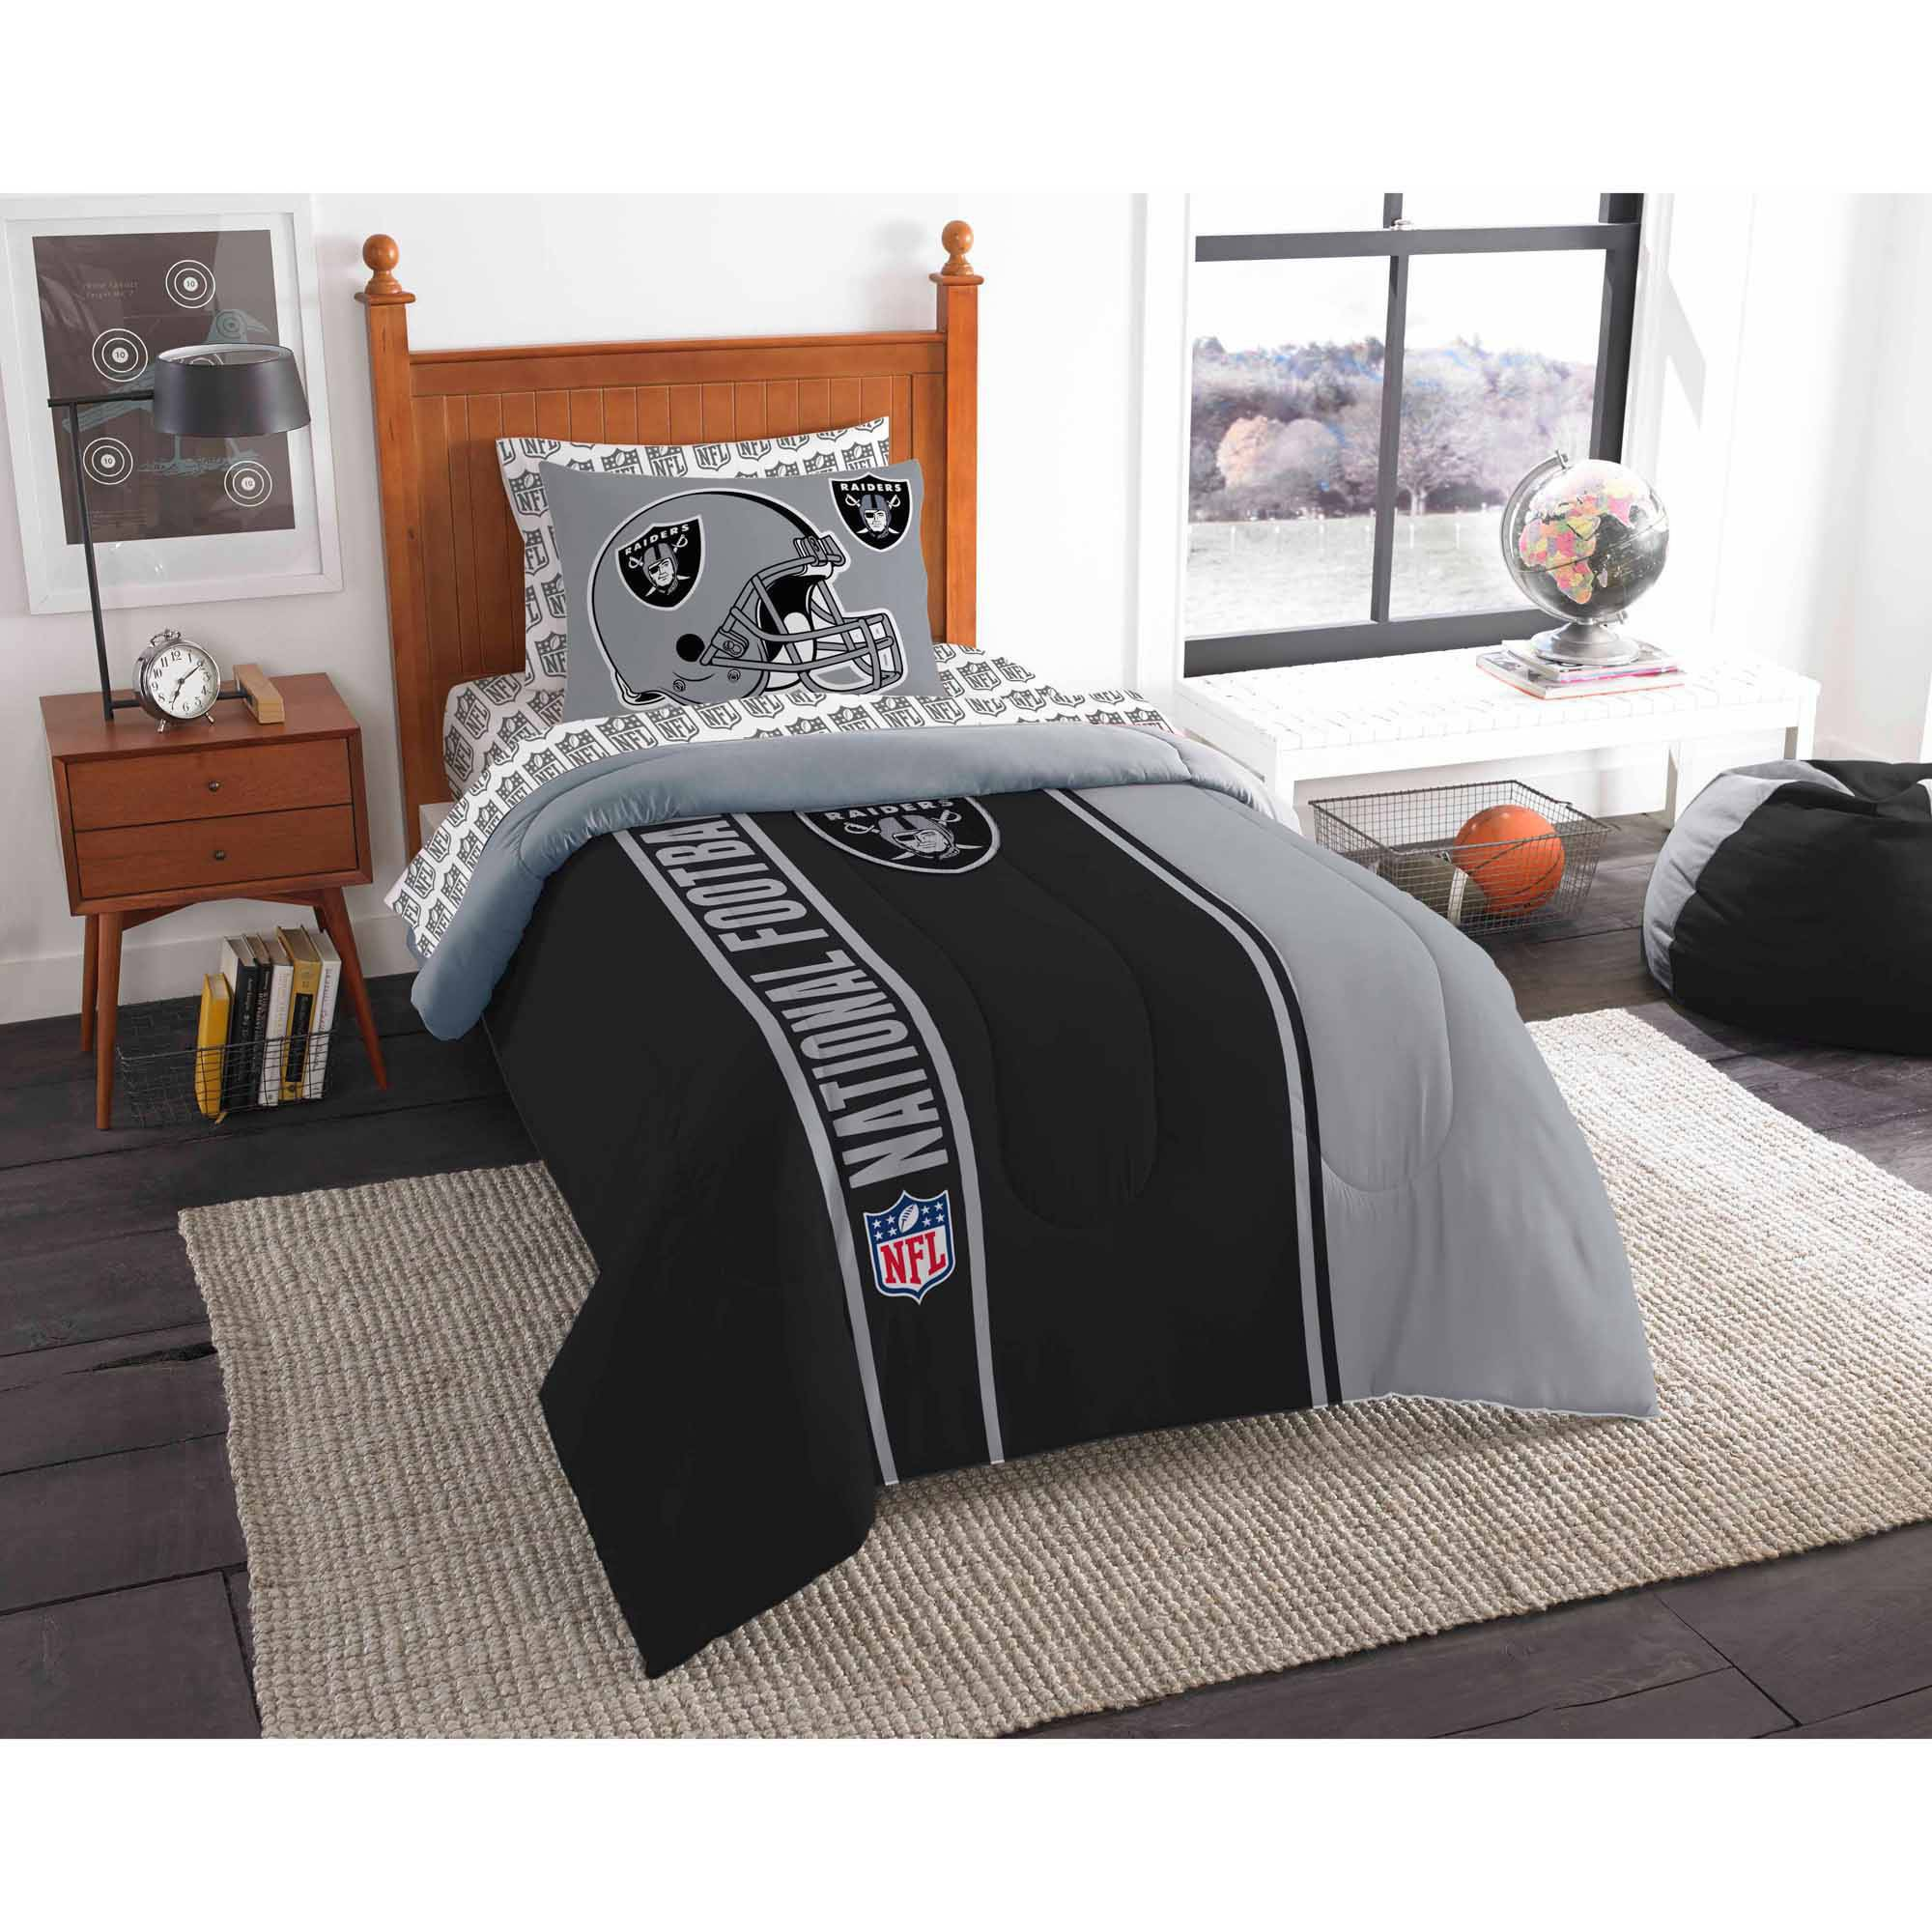 NFL Oakland Raiders Soft and Cozy Bed in a Bag Complete Bedding Set